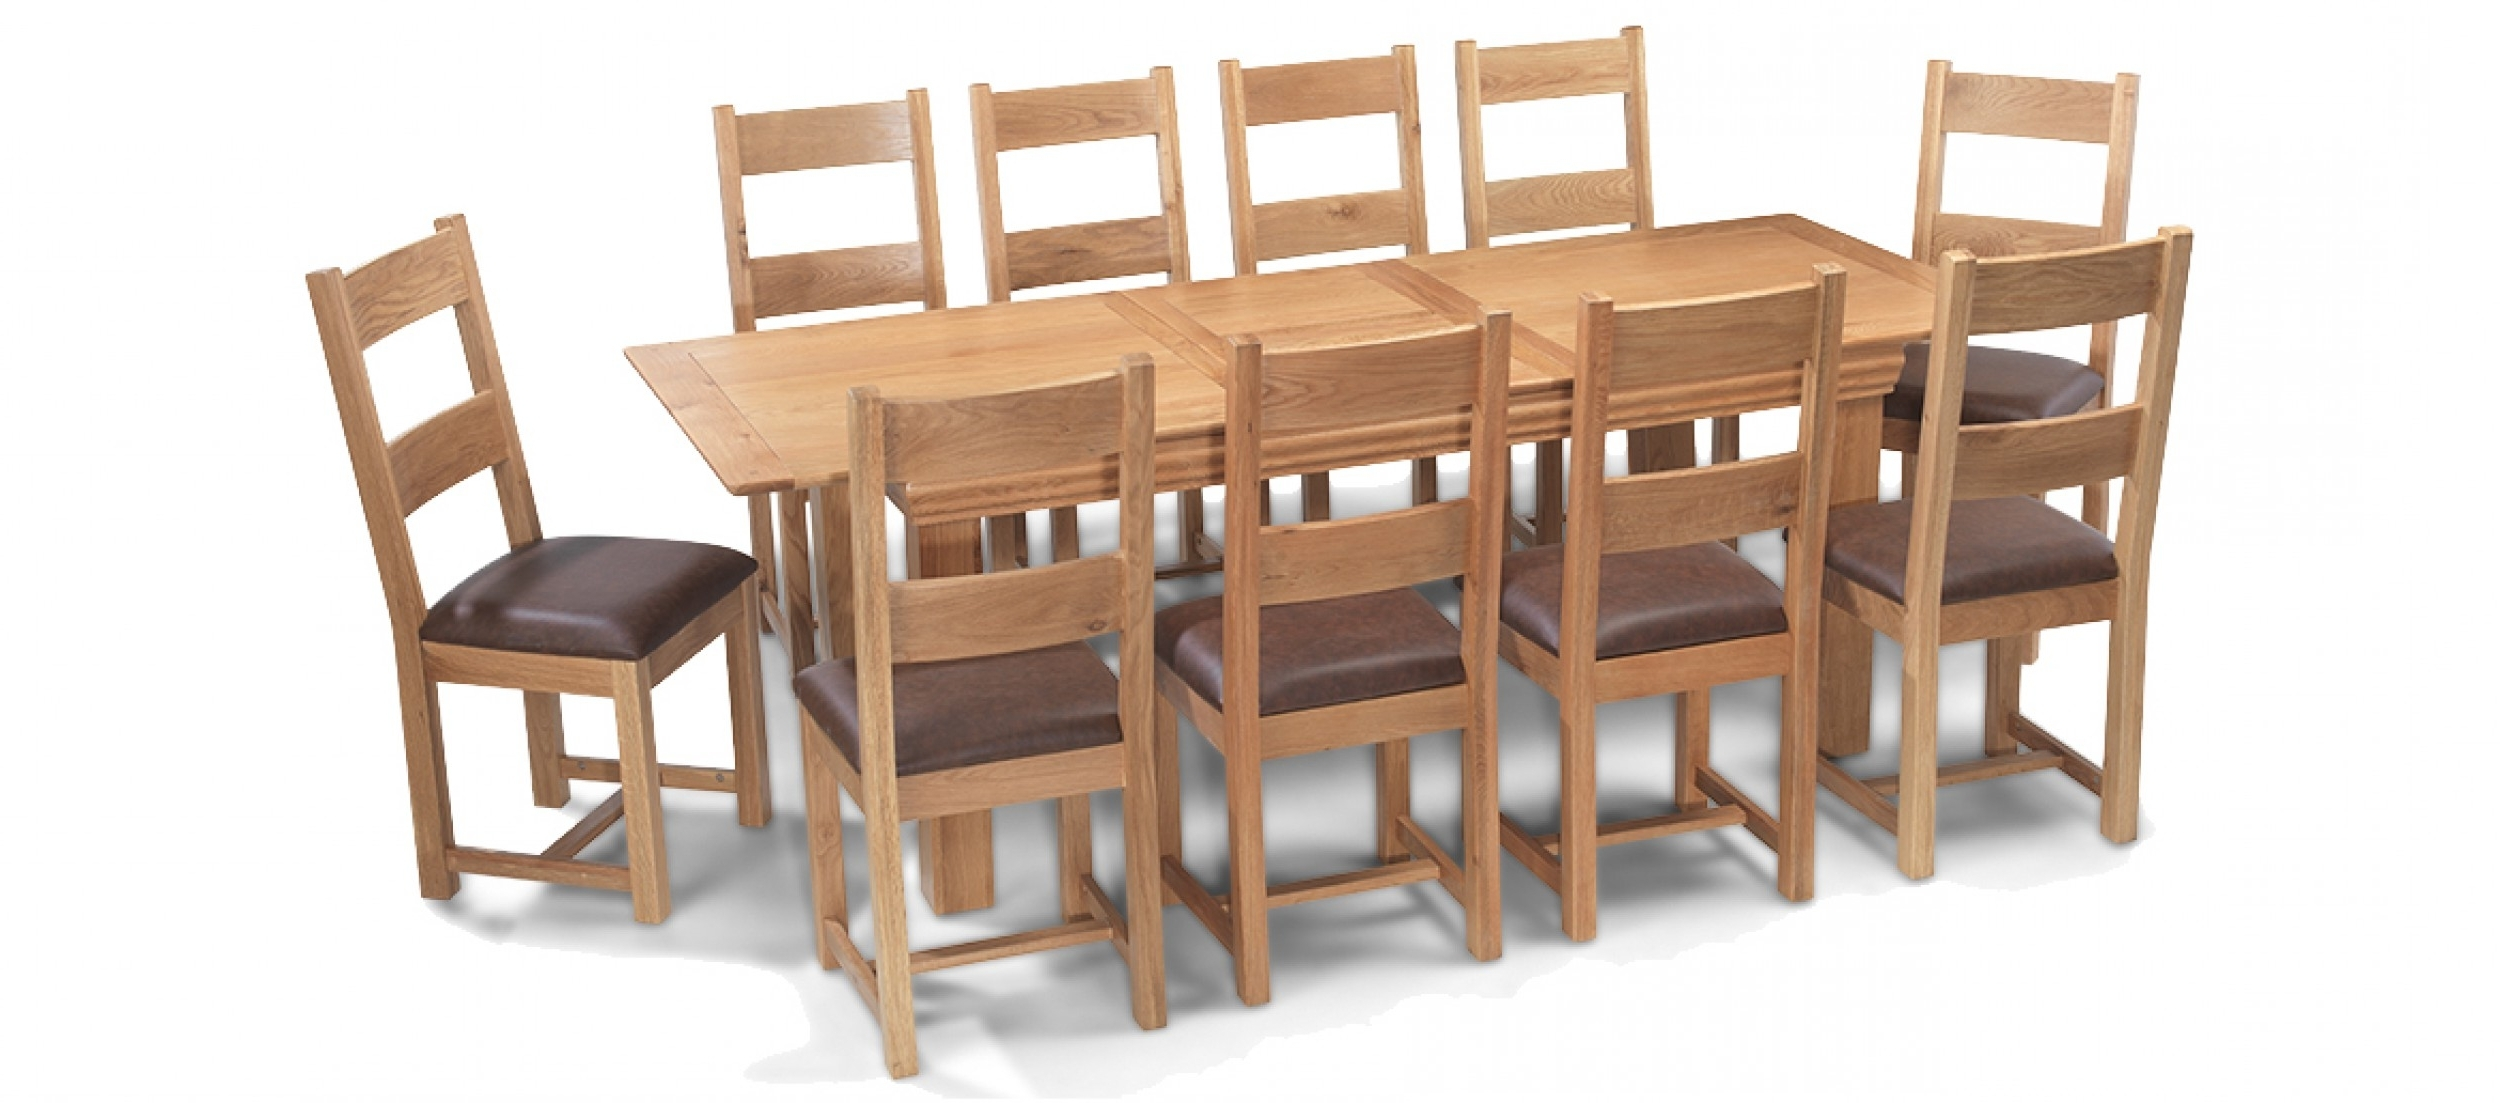 Constance Oak 180 230 Cm Extending Dining Table And 10 Chairs For Well Known Extending Dining Tables Set (Gallery 22 of 25)